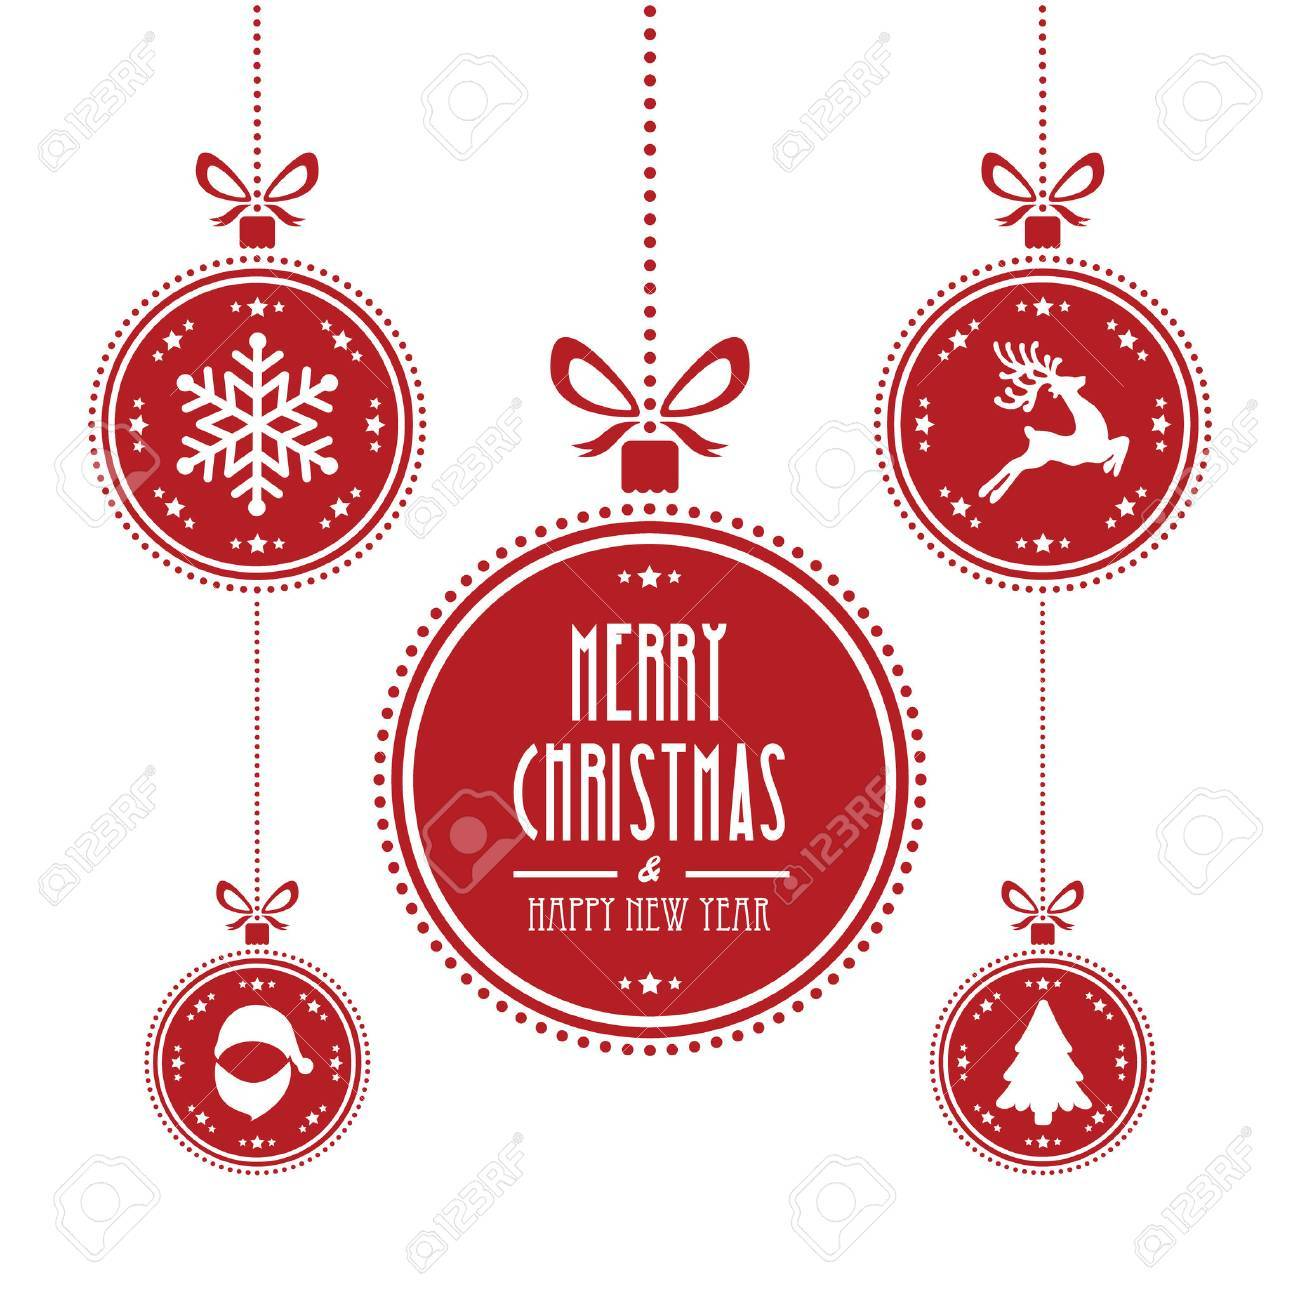 christmas ball red isolated background - 33773046